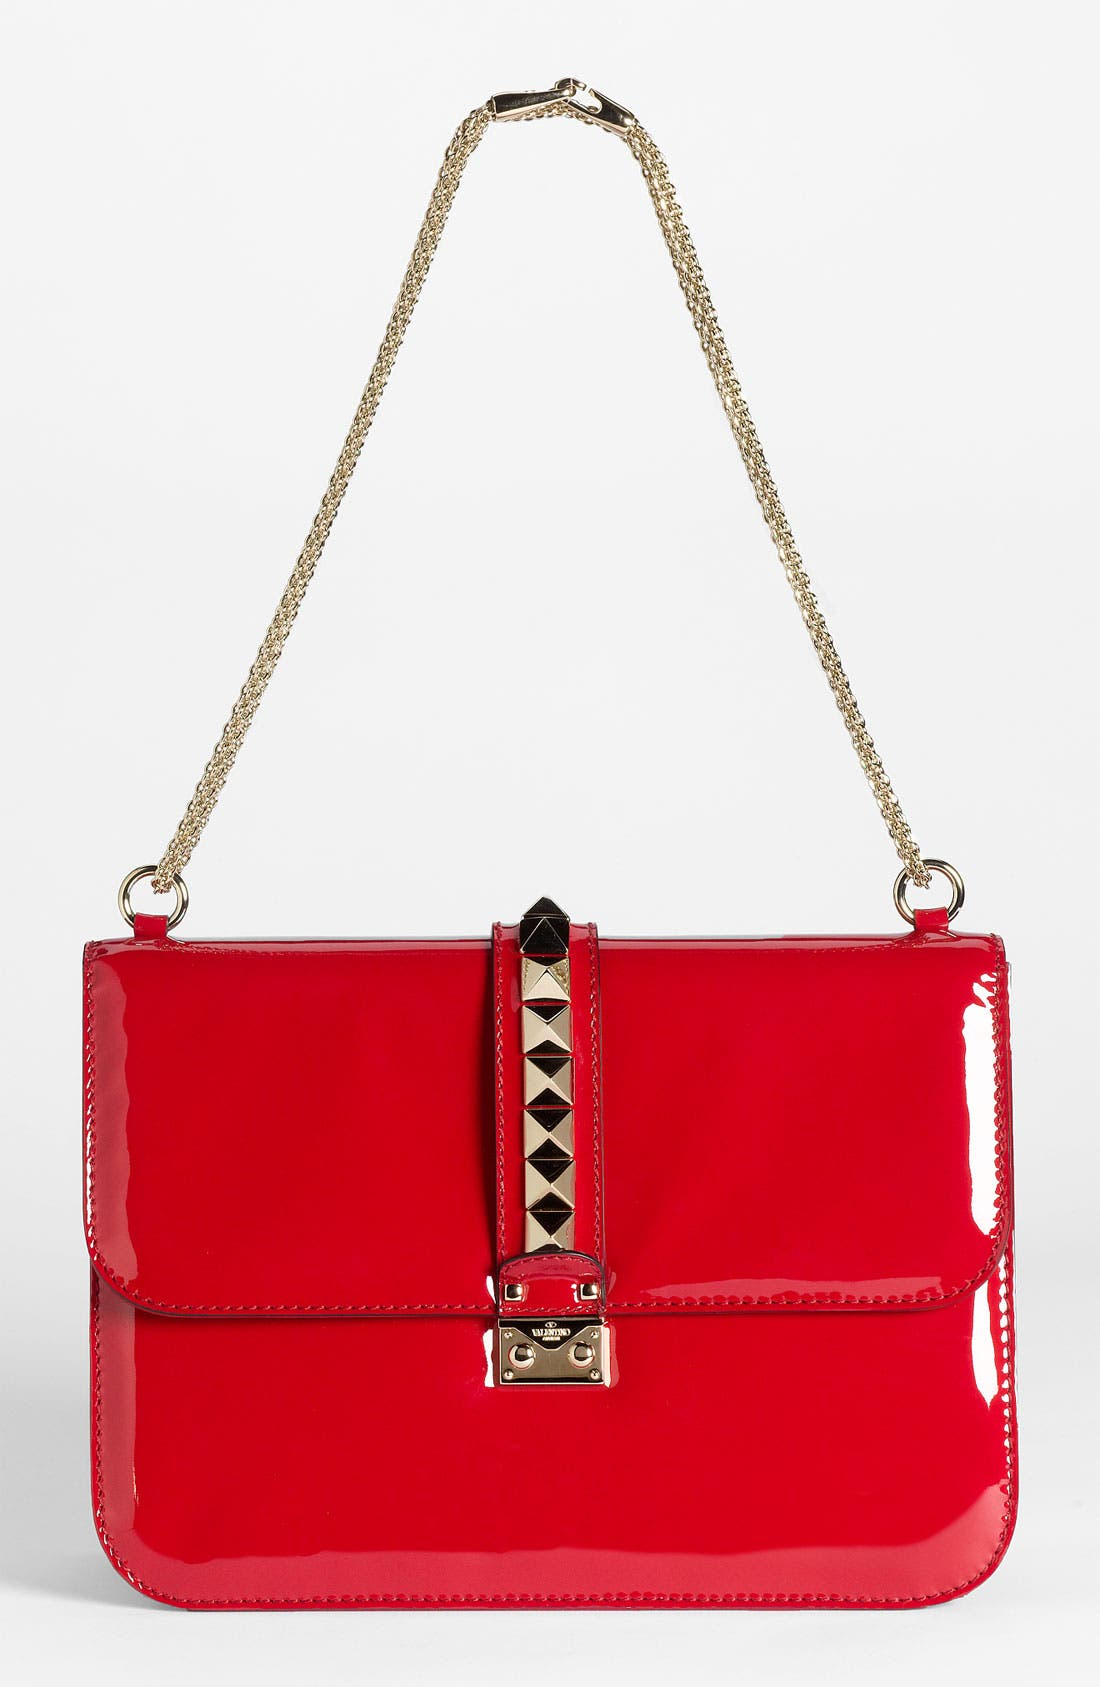 Main Image - Valentino 'Grande Lock' Patent Leather Shoulder Bag